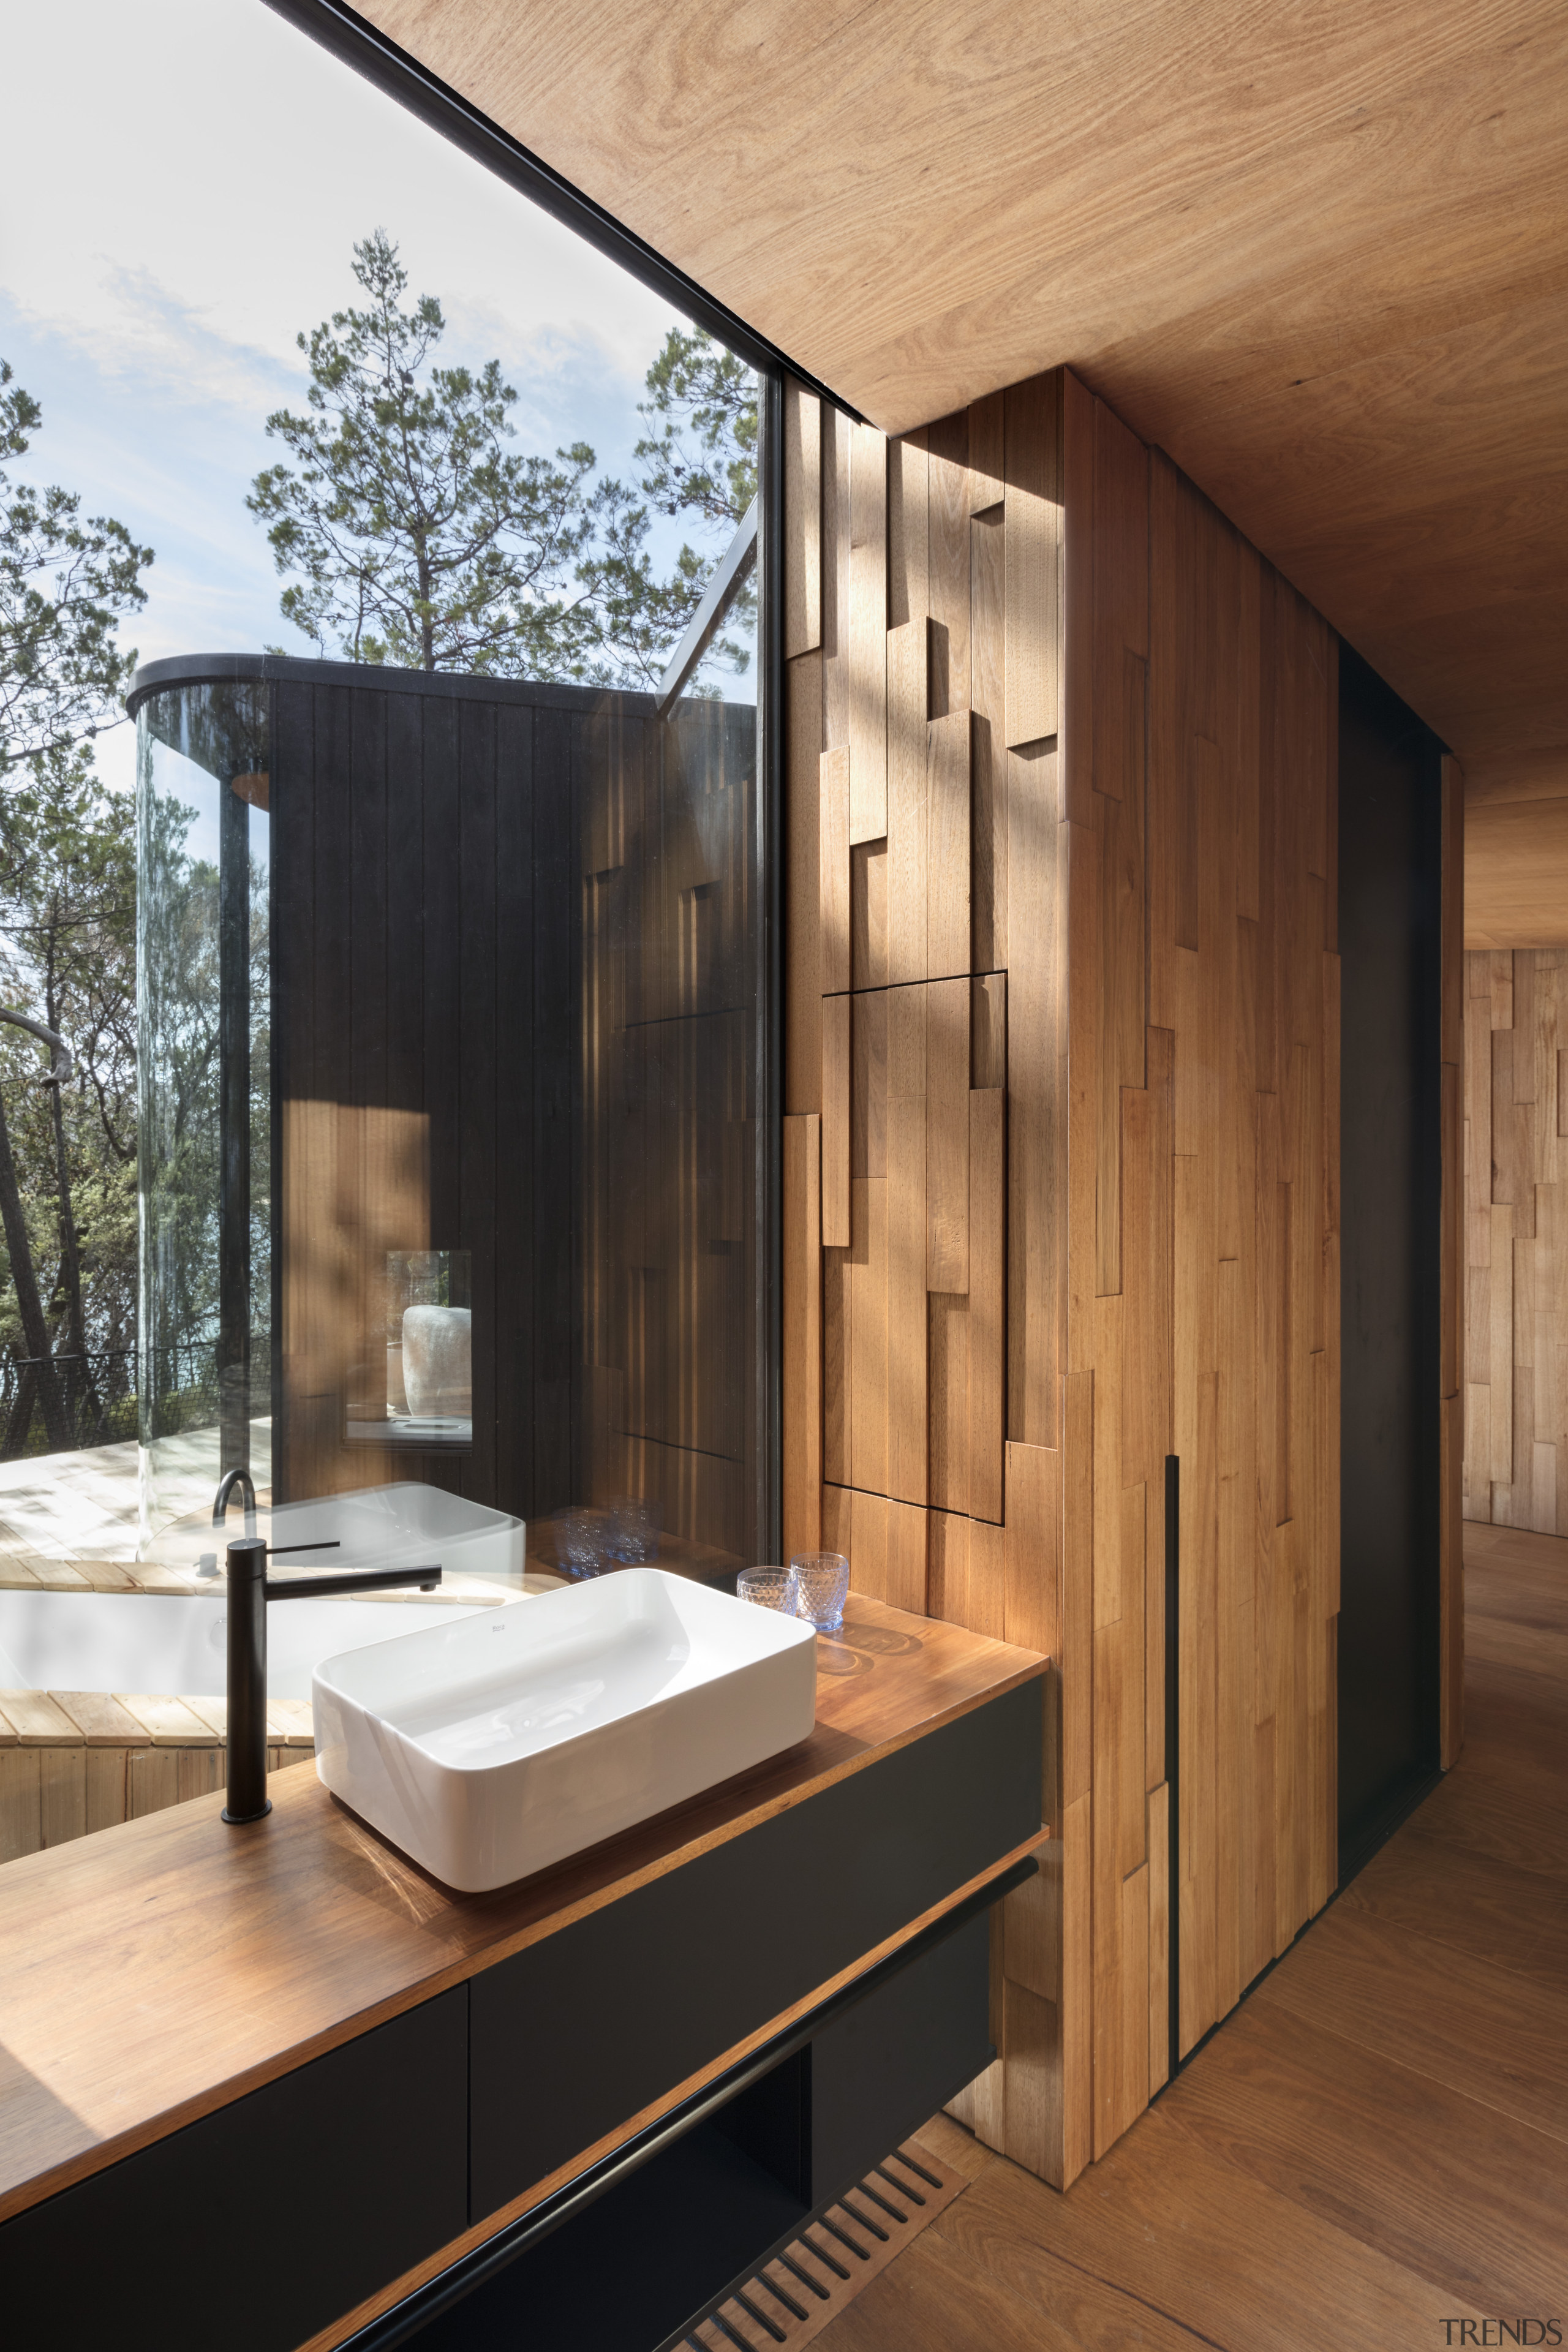 Tasmanian Oak interiors formed from off-cuts make for